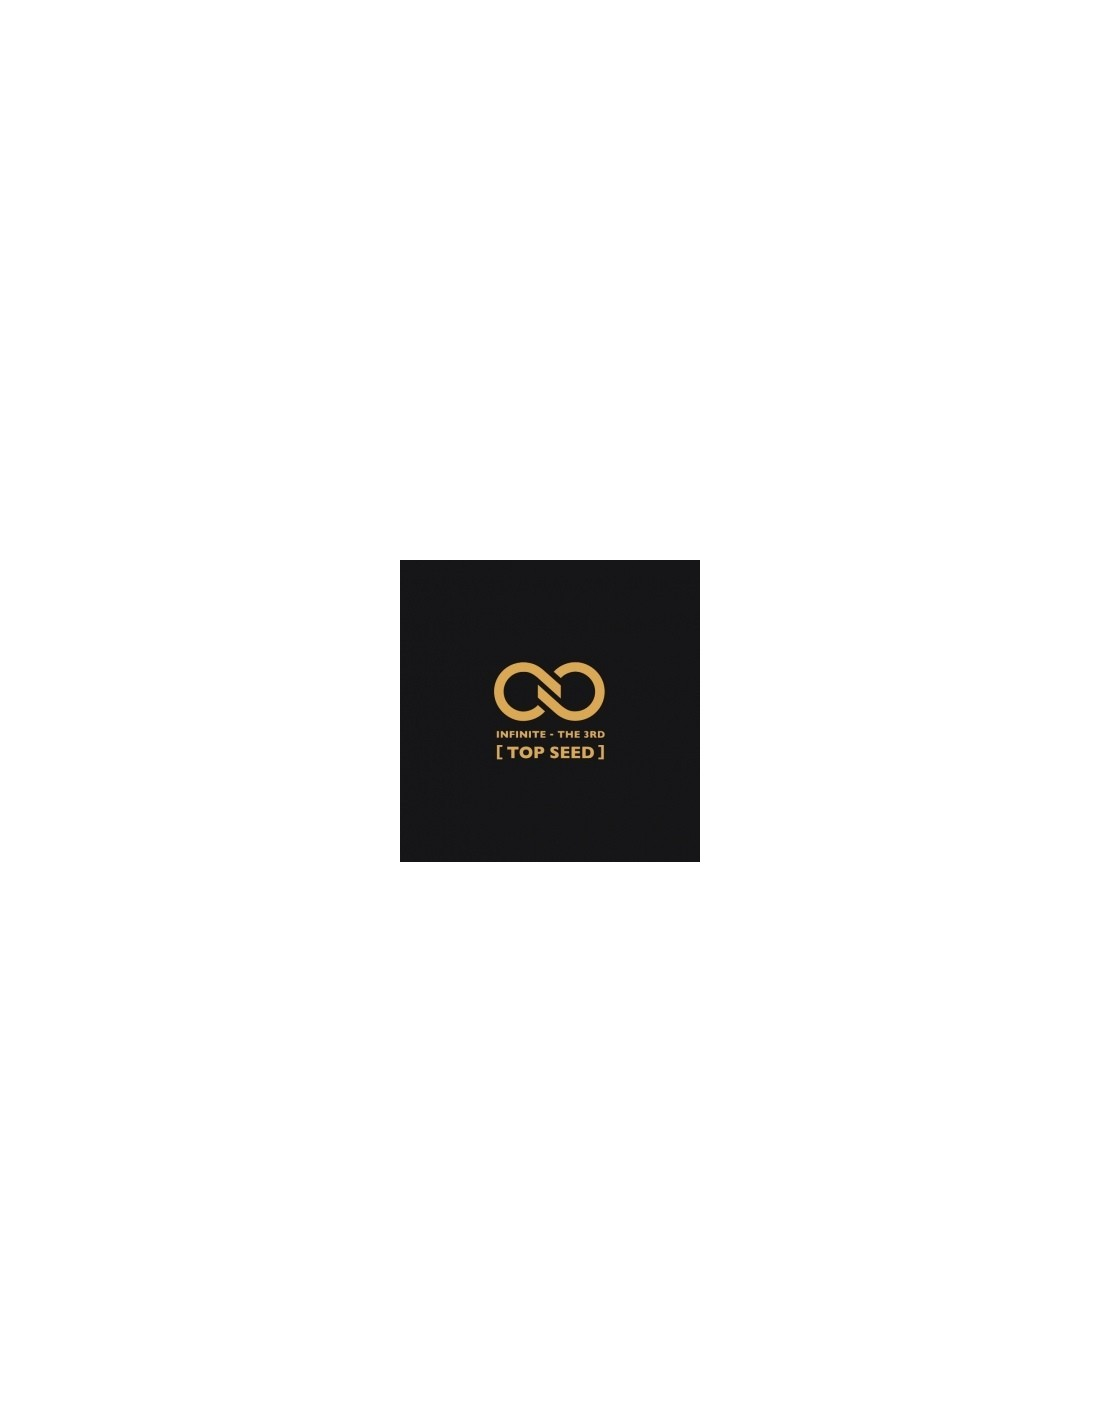 INFINITE the 3rd Album - TOP SEED CD + Poster